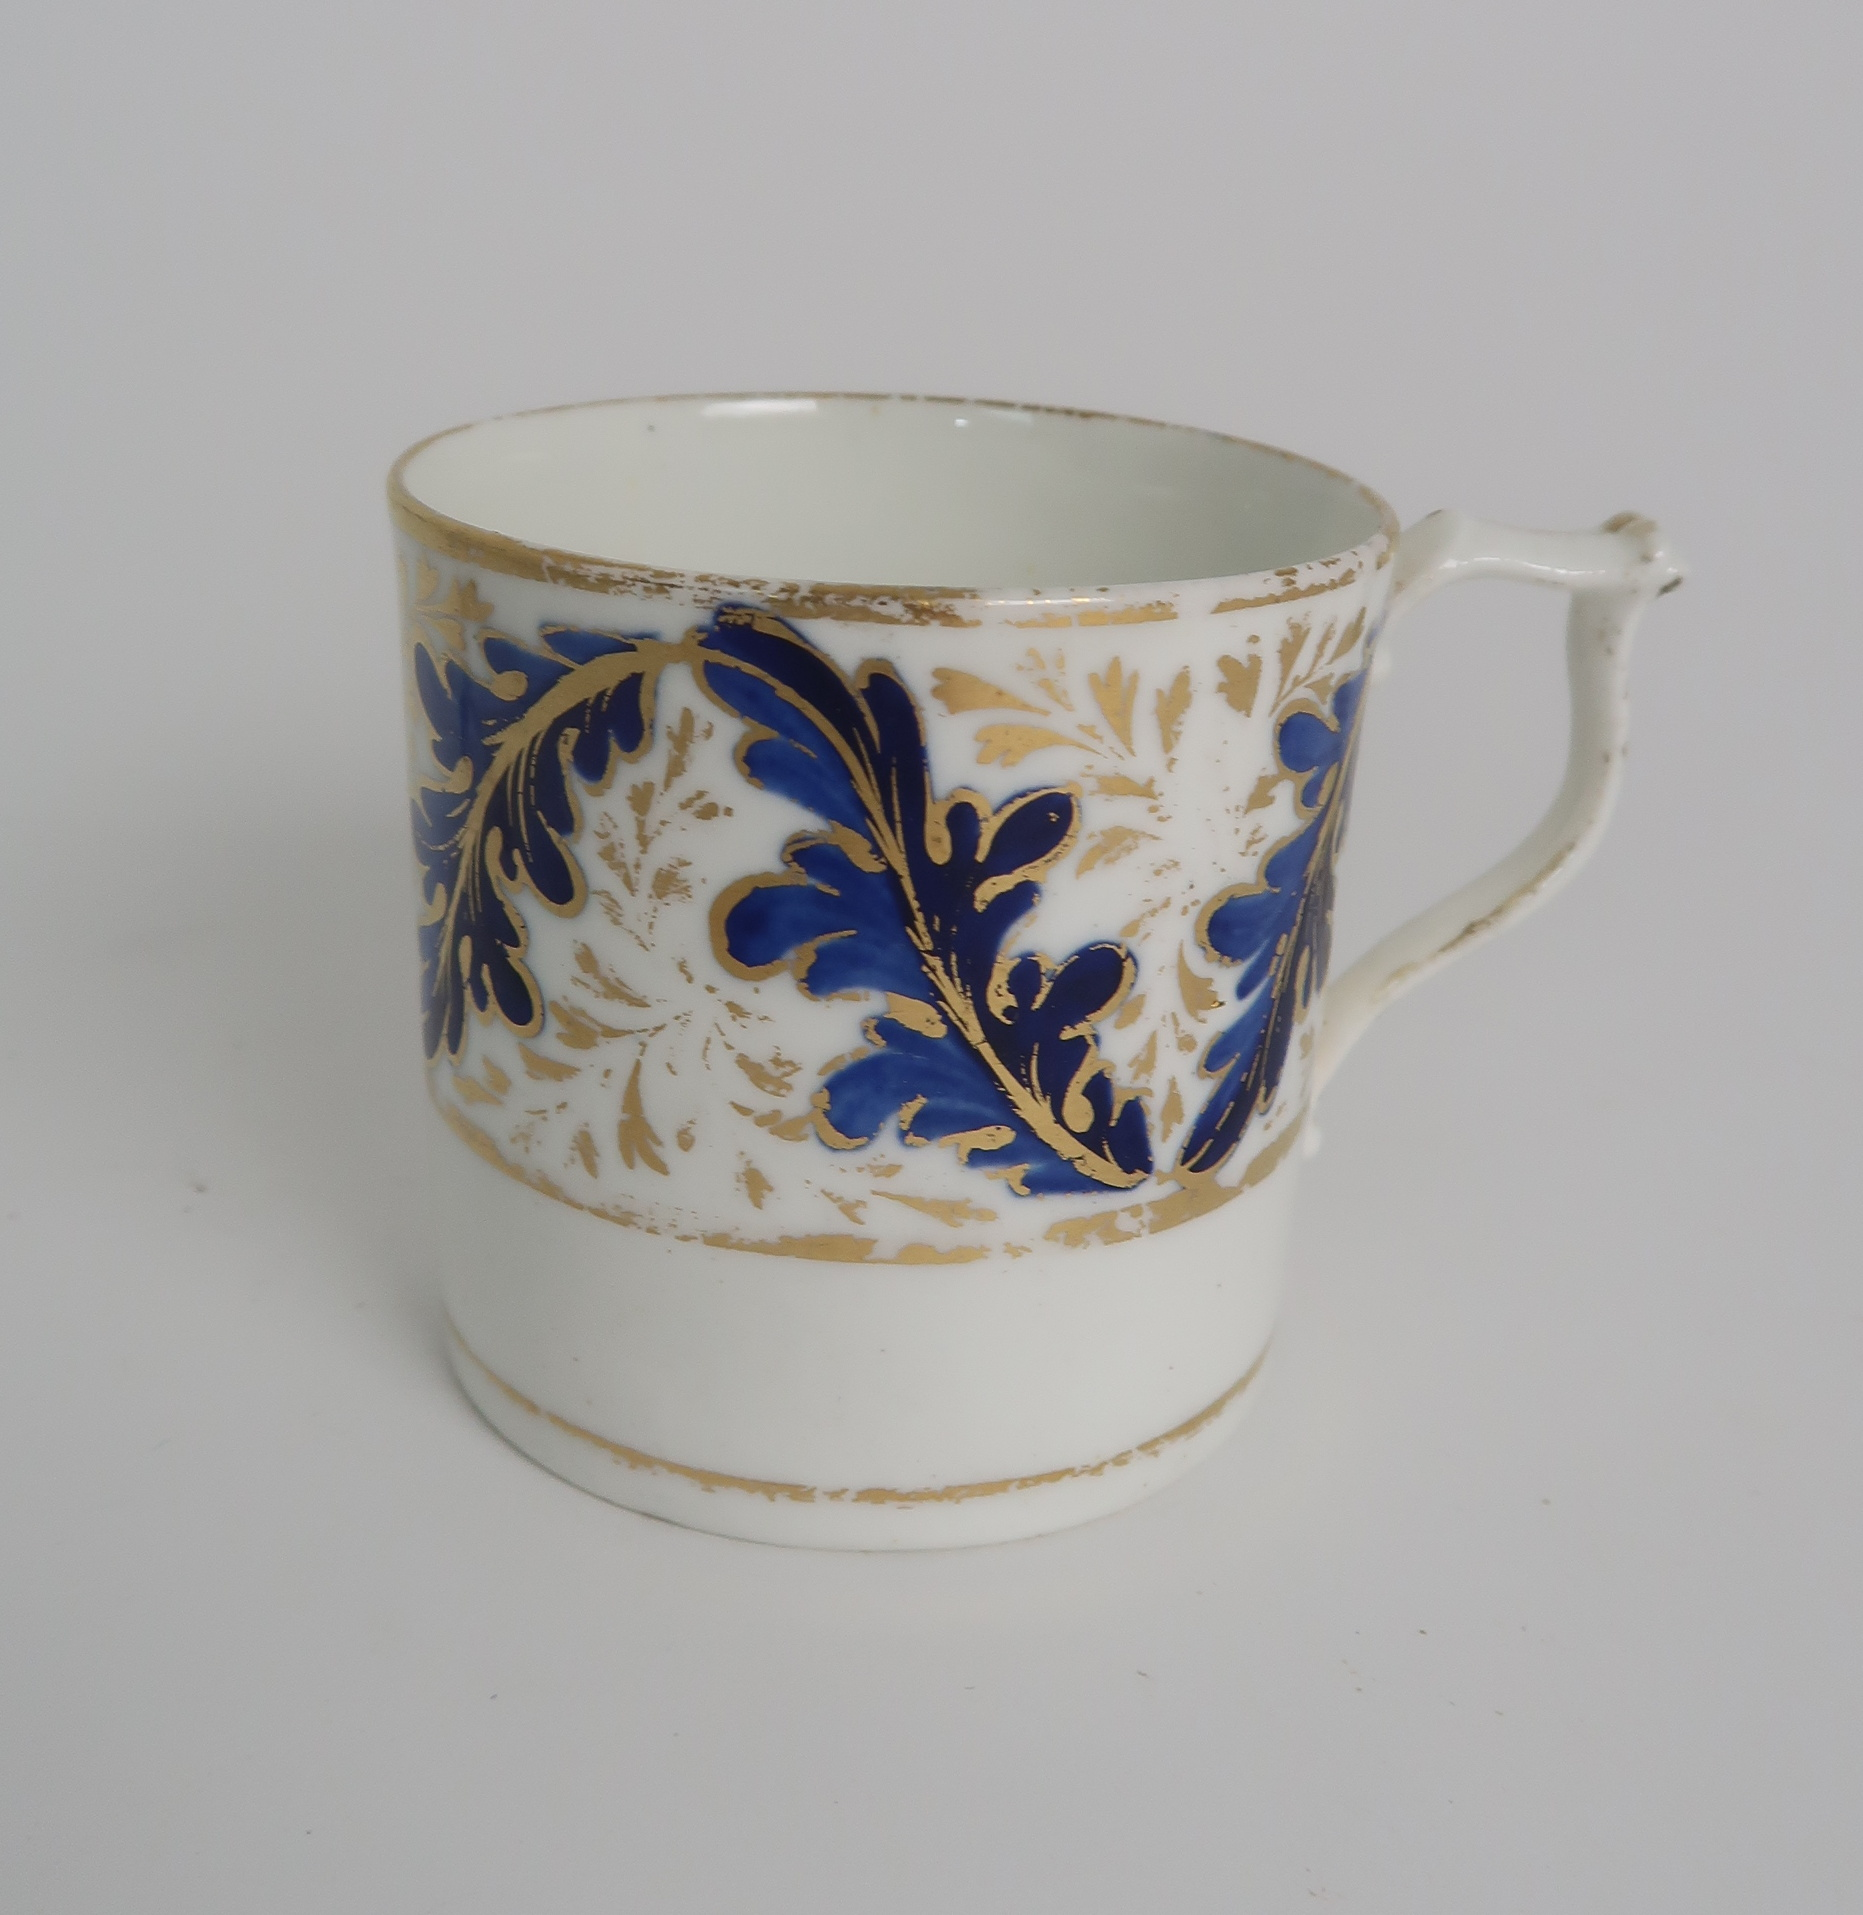 A COLLECTION OF 19TH CENTURY ENGLISH BLUE AND GILT DECORATED TEA AND COFFEE WARES including a - Image 23 of 23